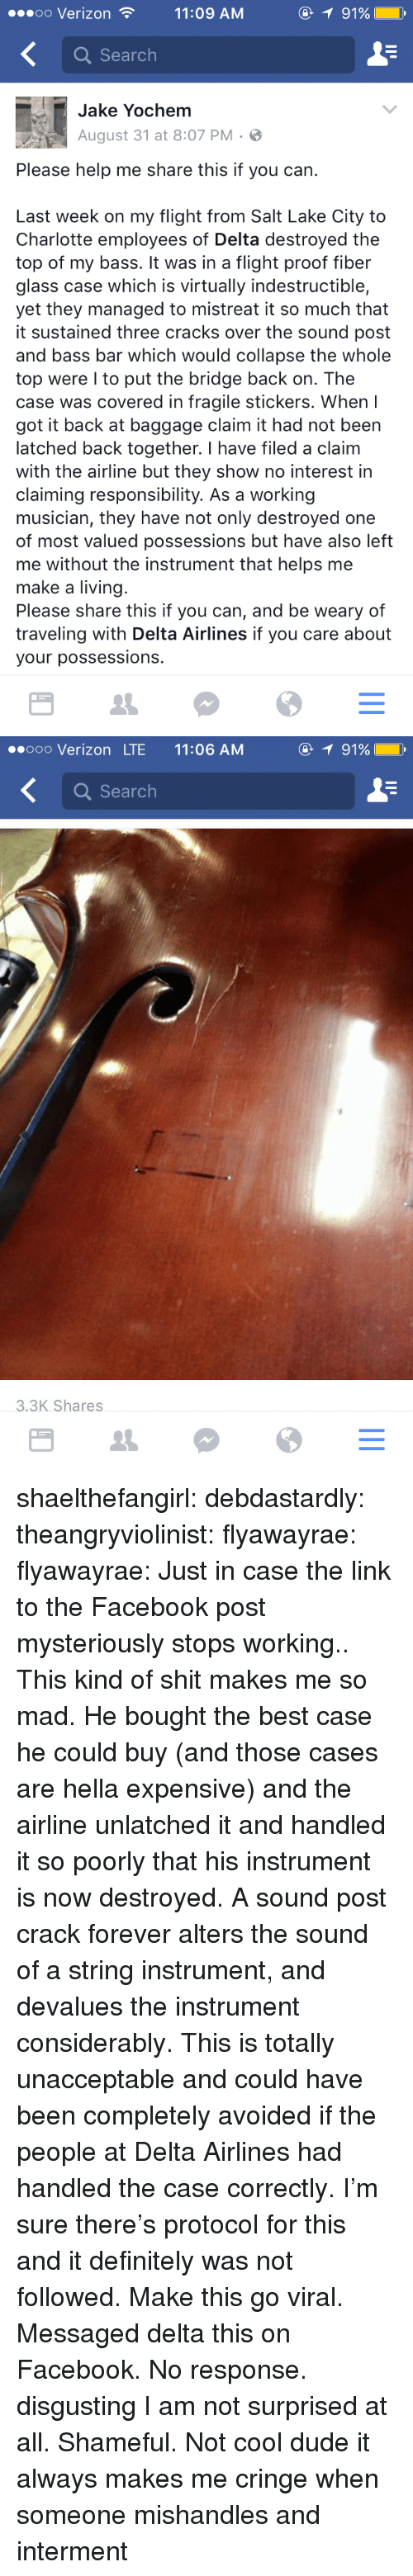 Definitely, Dude, and Facebook: oo Verizon11:09 AM  91%  Q Search  Jake Yochem  August 31 at 8:07 PM.  Please help me share this if you can.  Last week on my flight from Salt Lake City to  Charlotte employees of Delta destroyed the  top of my bass. It was in a flight proof fiber  glass case which is virtually indestructible,  yet they managed to mistreat it so much that  it sustained three cracks over the sound post  and bass bar which would collapse the whole  top were I to put the bridge back on. The  case was covered in fragile stickers. When I  got it back at baggage claim it had not been  latched back together. I have filed a claim  with the airline but they show no interest in  claiming responsibility. As a working  musician, they have not only destroyed one  of most valued possessions but have also left  me without the instrument that helps me  make a living  Please share this if you can, and be weary of  traveling with Delta Airlines if you care about  your possessions.   ooo Verizon LTE 11:06 AM  1 91%  Q Search  3.3K Shares shaelthefangirl:  debdastardly:  theangryviolinist:  flyawayrae:  flyawayrae:  Just in case the link to the Facebook post mysteriously stops working..  This kind of shit makes me so mad. He bought the best case he could buy (and those cases are hella expensive) and the airline unlatched it and handled it so poorly that his instrument is now destroyed. A sound post crack forever alters the sound of a string instrument, and devalues the instrument considerably. This is totally unacceptable and could have been completely avoided if the people at Delta Airlines had handled the case correctly. I'm sure there's protocol for this and it definitely was not followed. Make this go viral.  Messaged delta this on Facebook. No response.  disgusting  I am not surprised at all. Shameful.  Not cool dude   it always makes me cringe when someone mishandles and interment